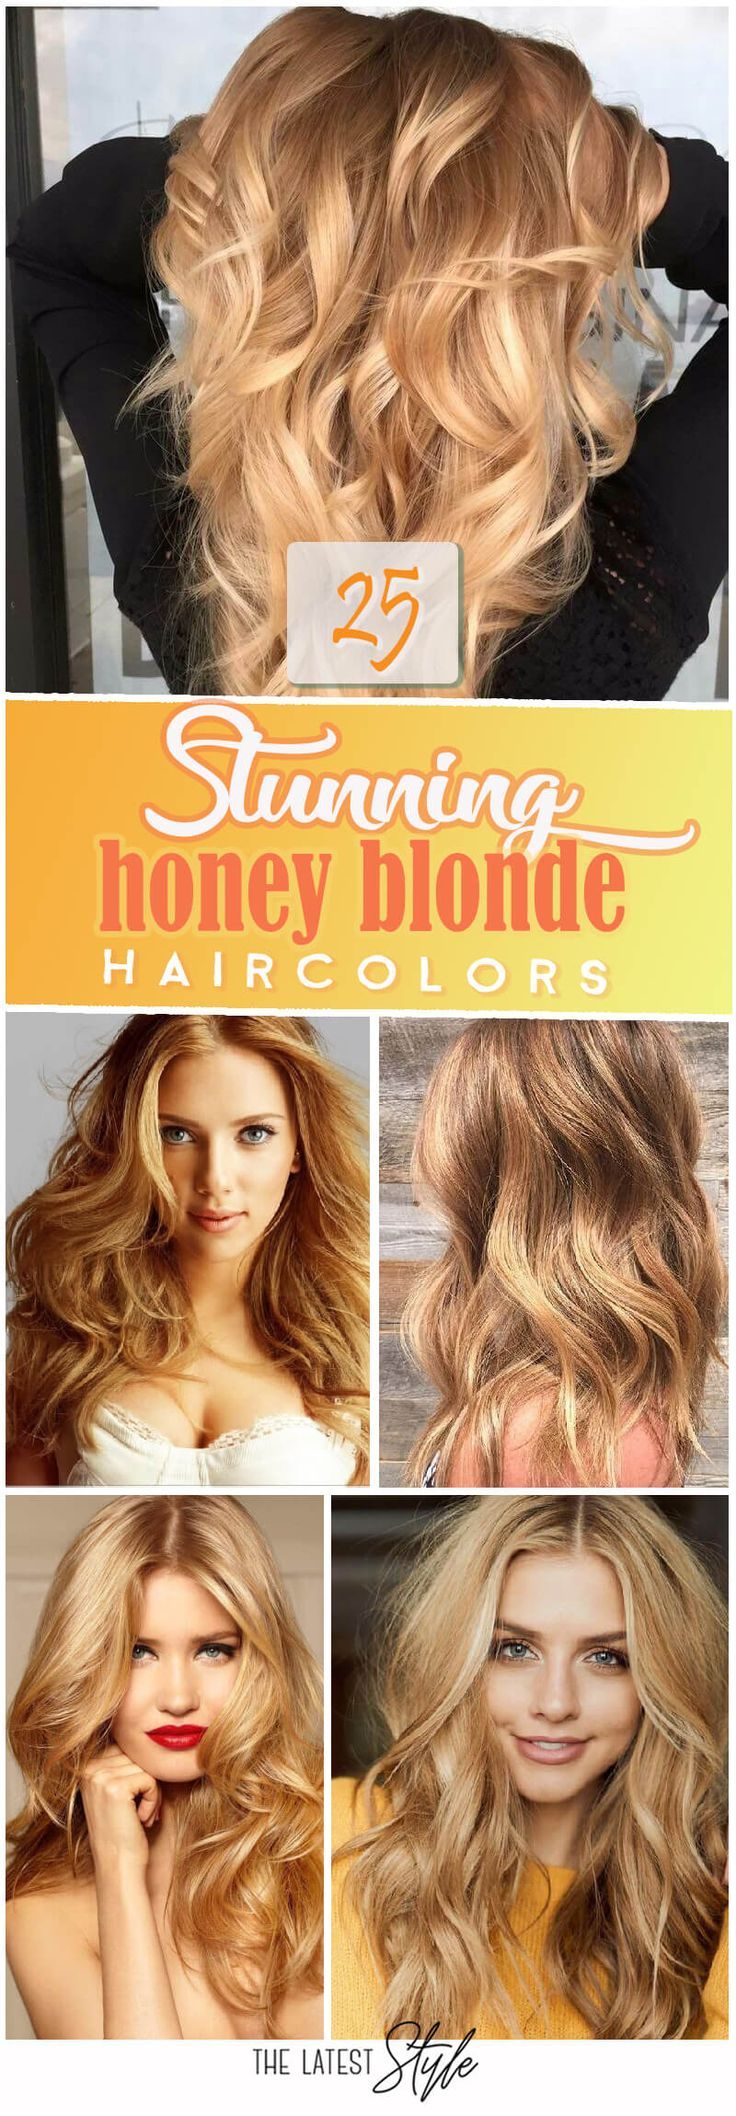 """Heidi Klum has said that, """"going blonde is like buying yourself a light bulb."""" Maybe you're already blonde and are looking to mix up your hue, or perhaps you're going ... Read More"""